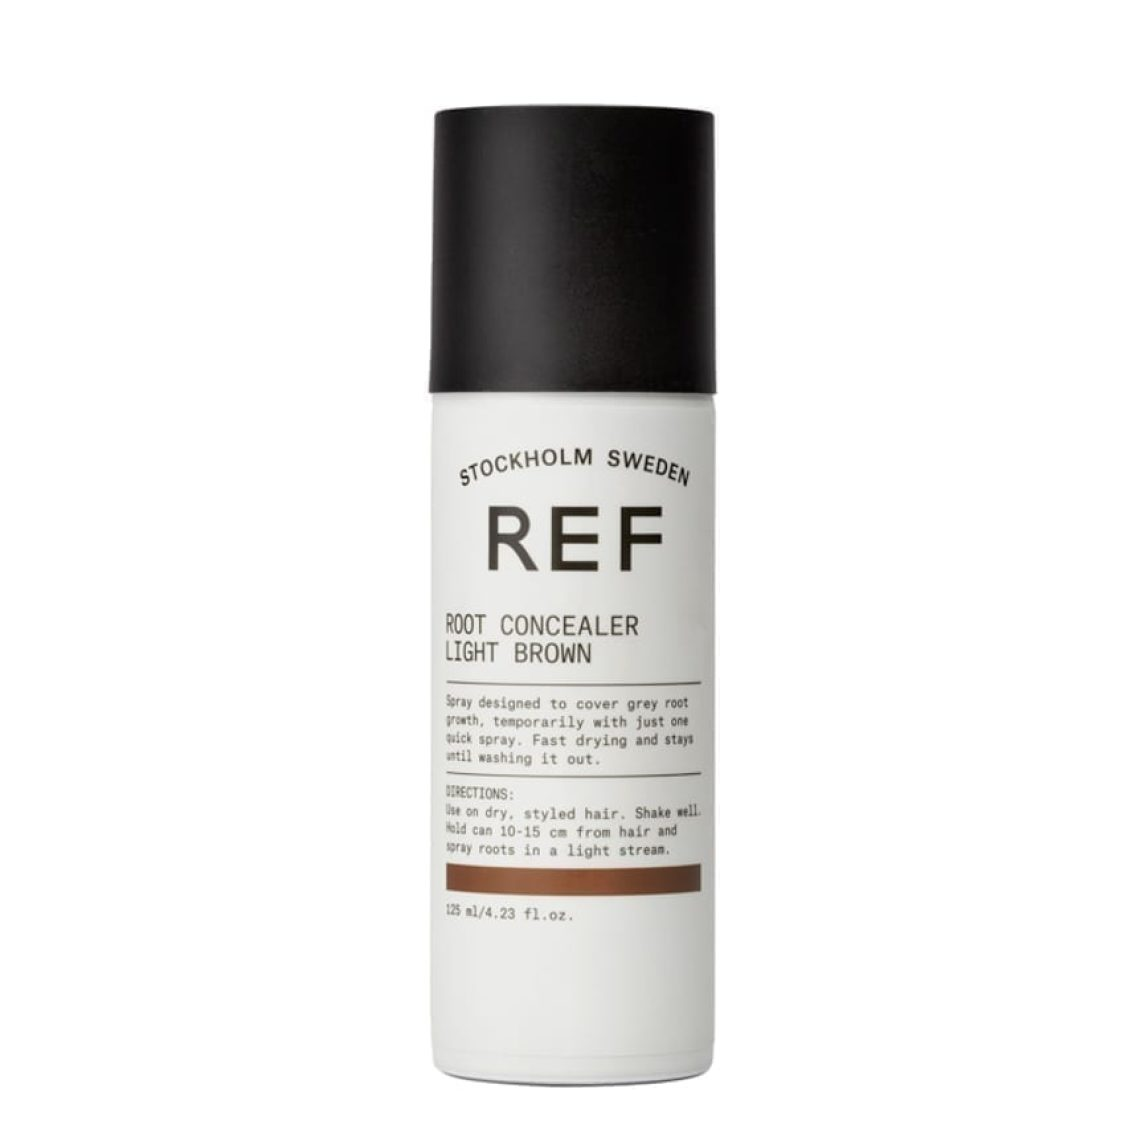 REF - Root Concealer Light Brown 125ml